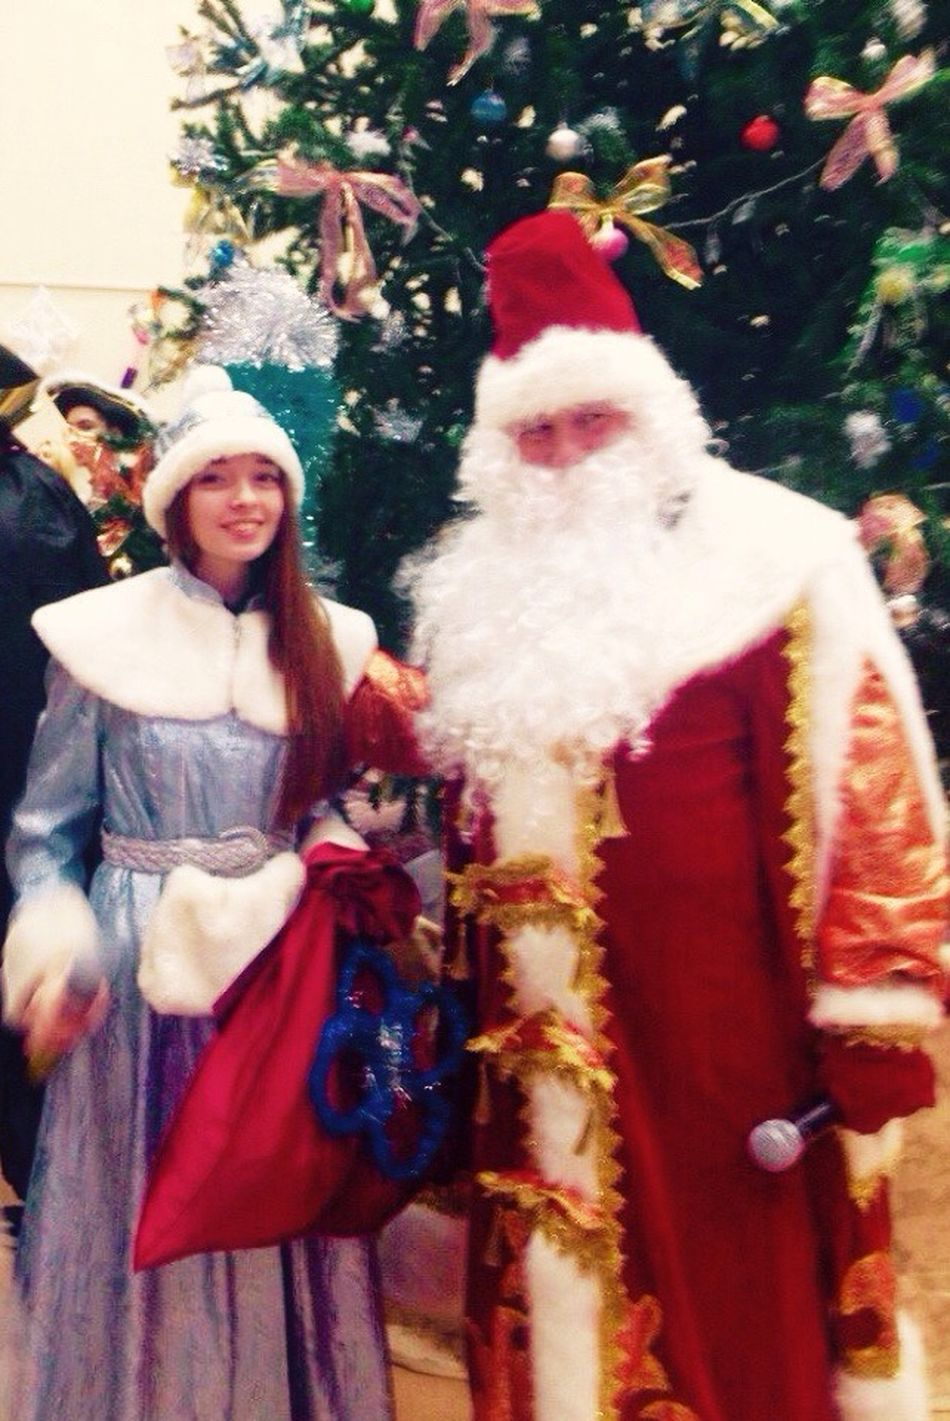 Happy New Years  That's Me New Year 2015 Santa Claus And Snow-Maiden Snow Maiden